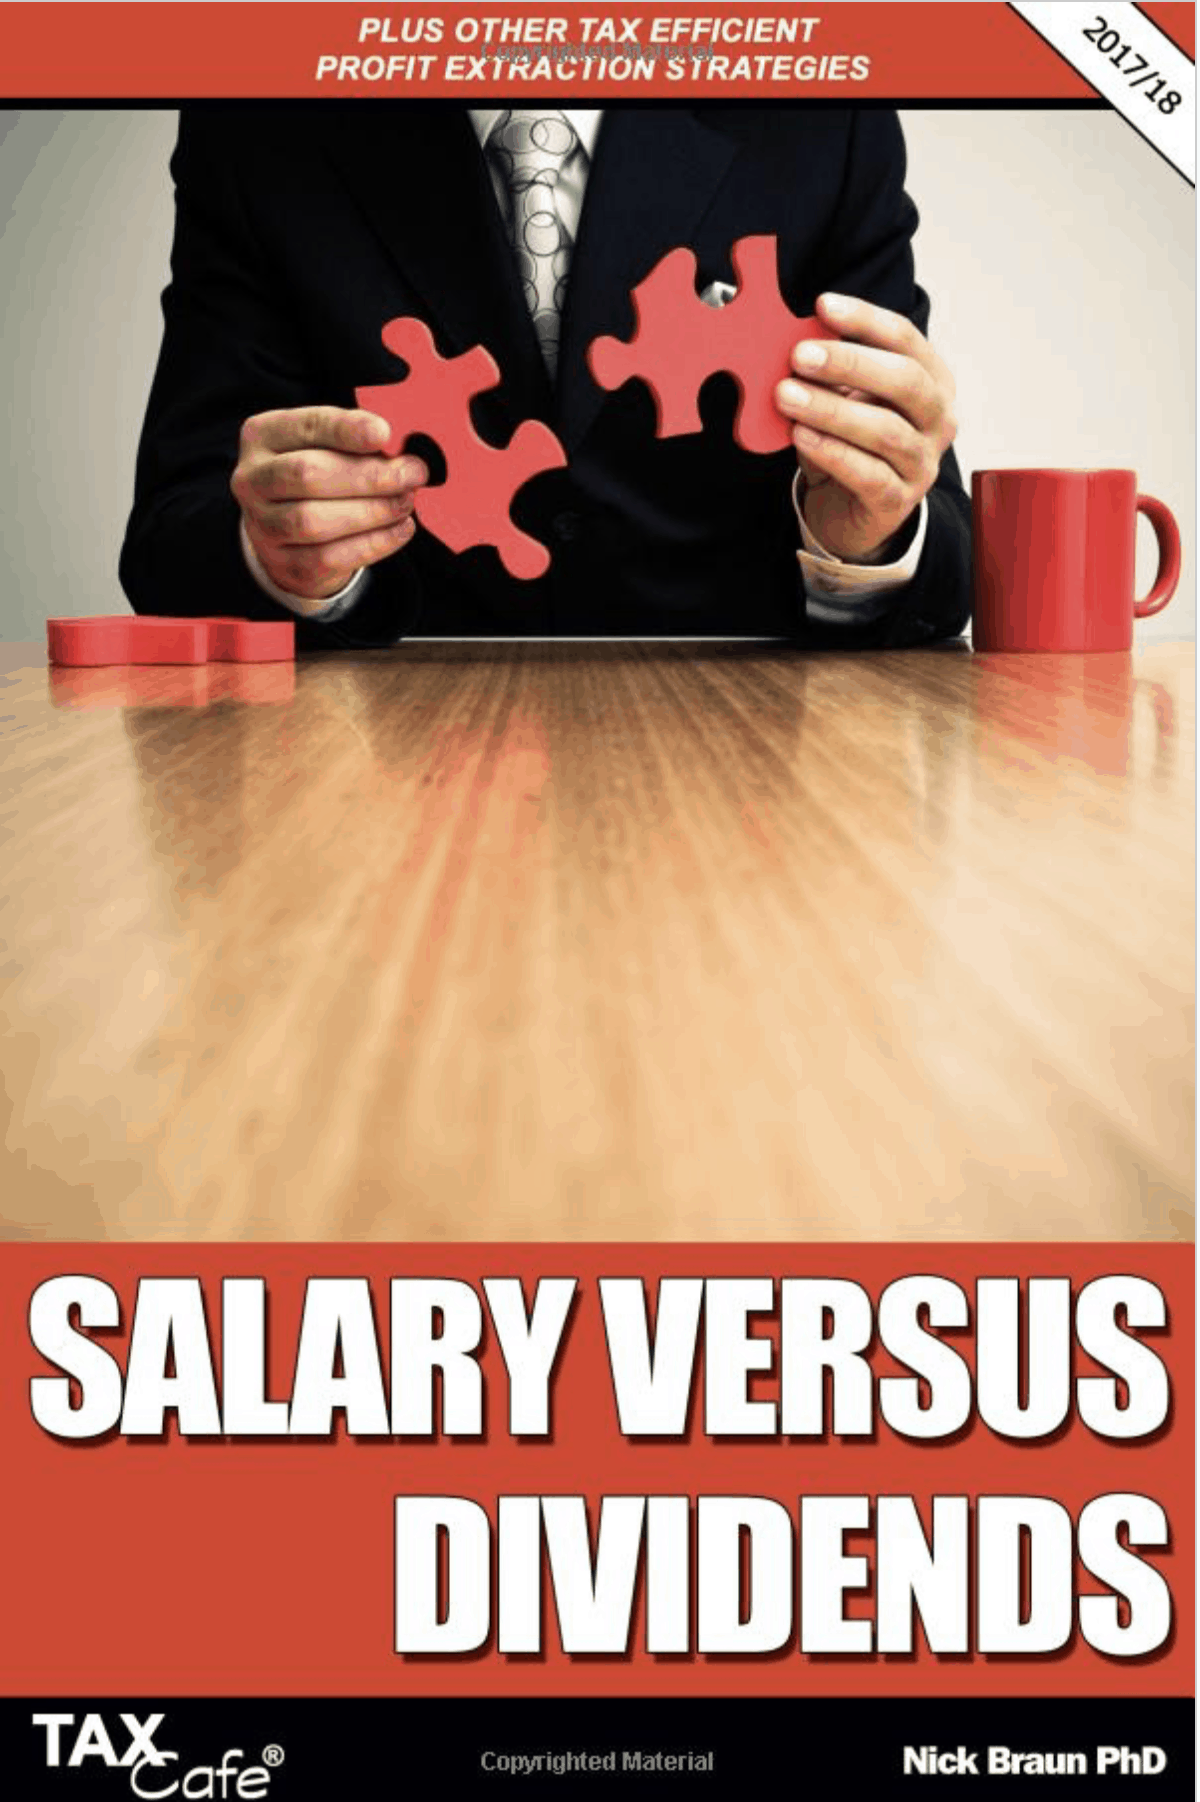 Should I pay myself a salary or take dividends?